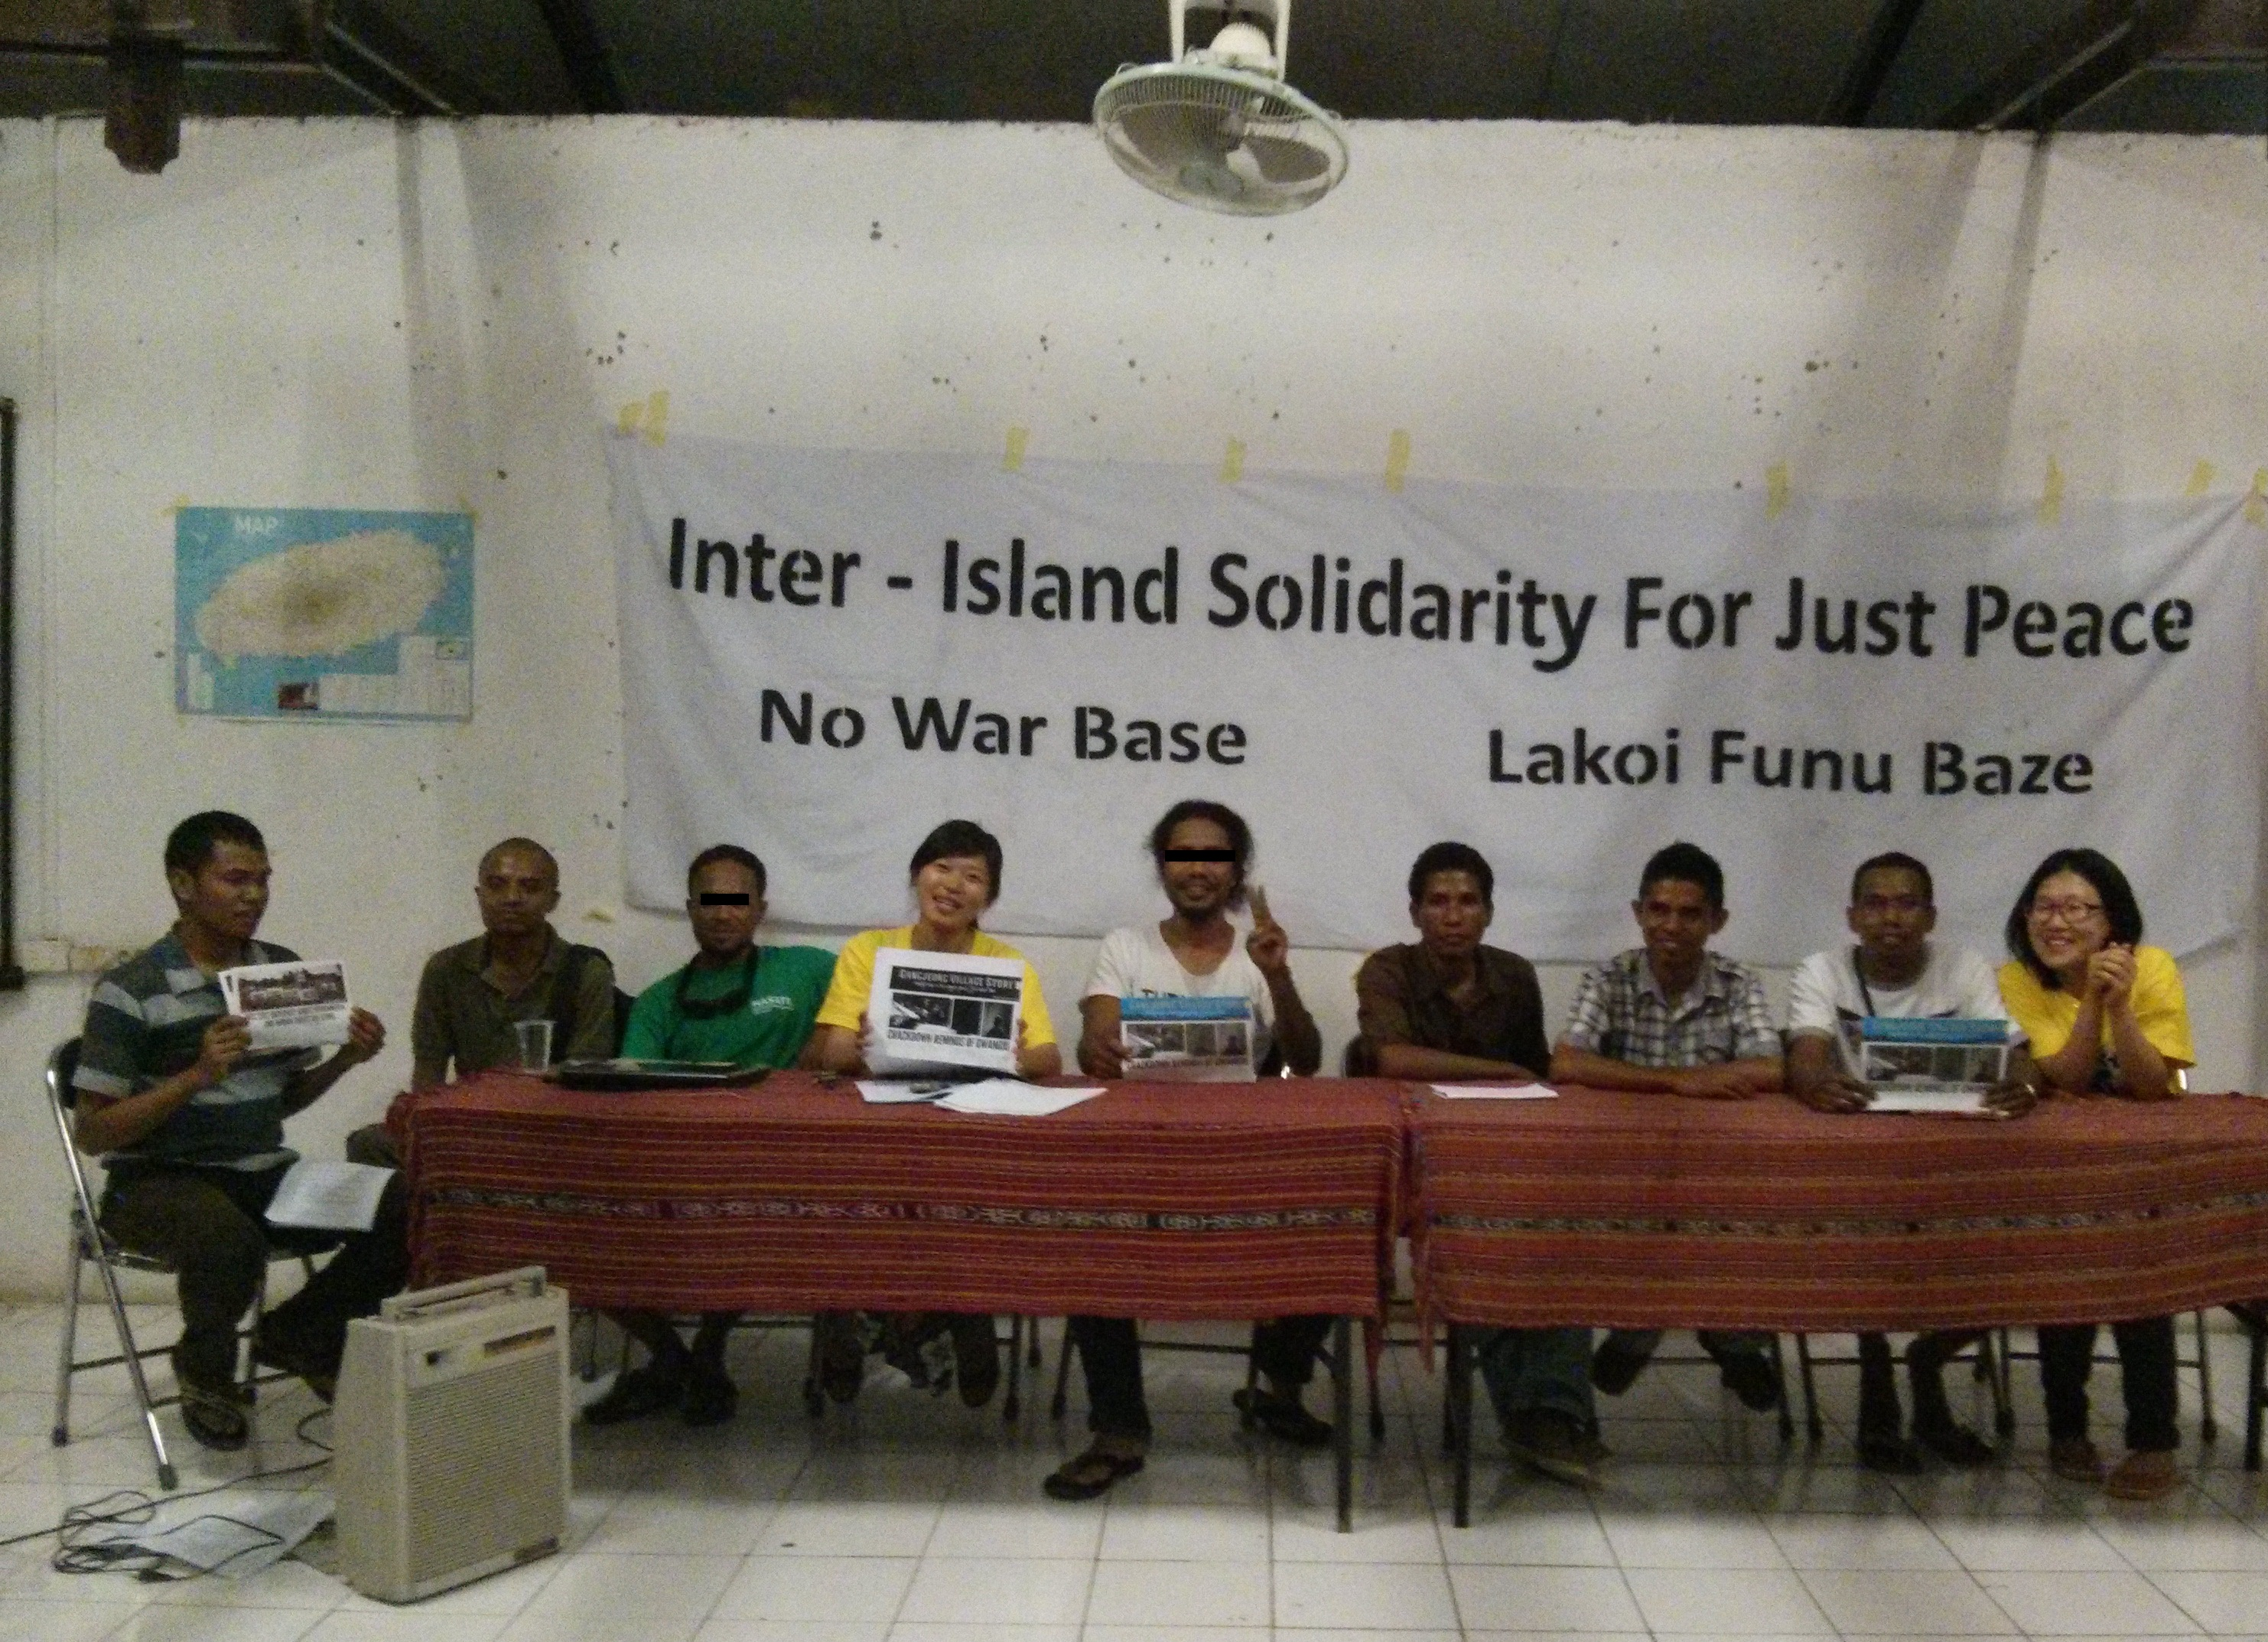 Inter-Island solidarity for Justice event in Timor (3)